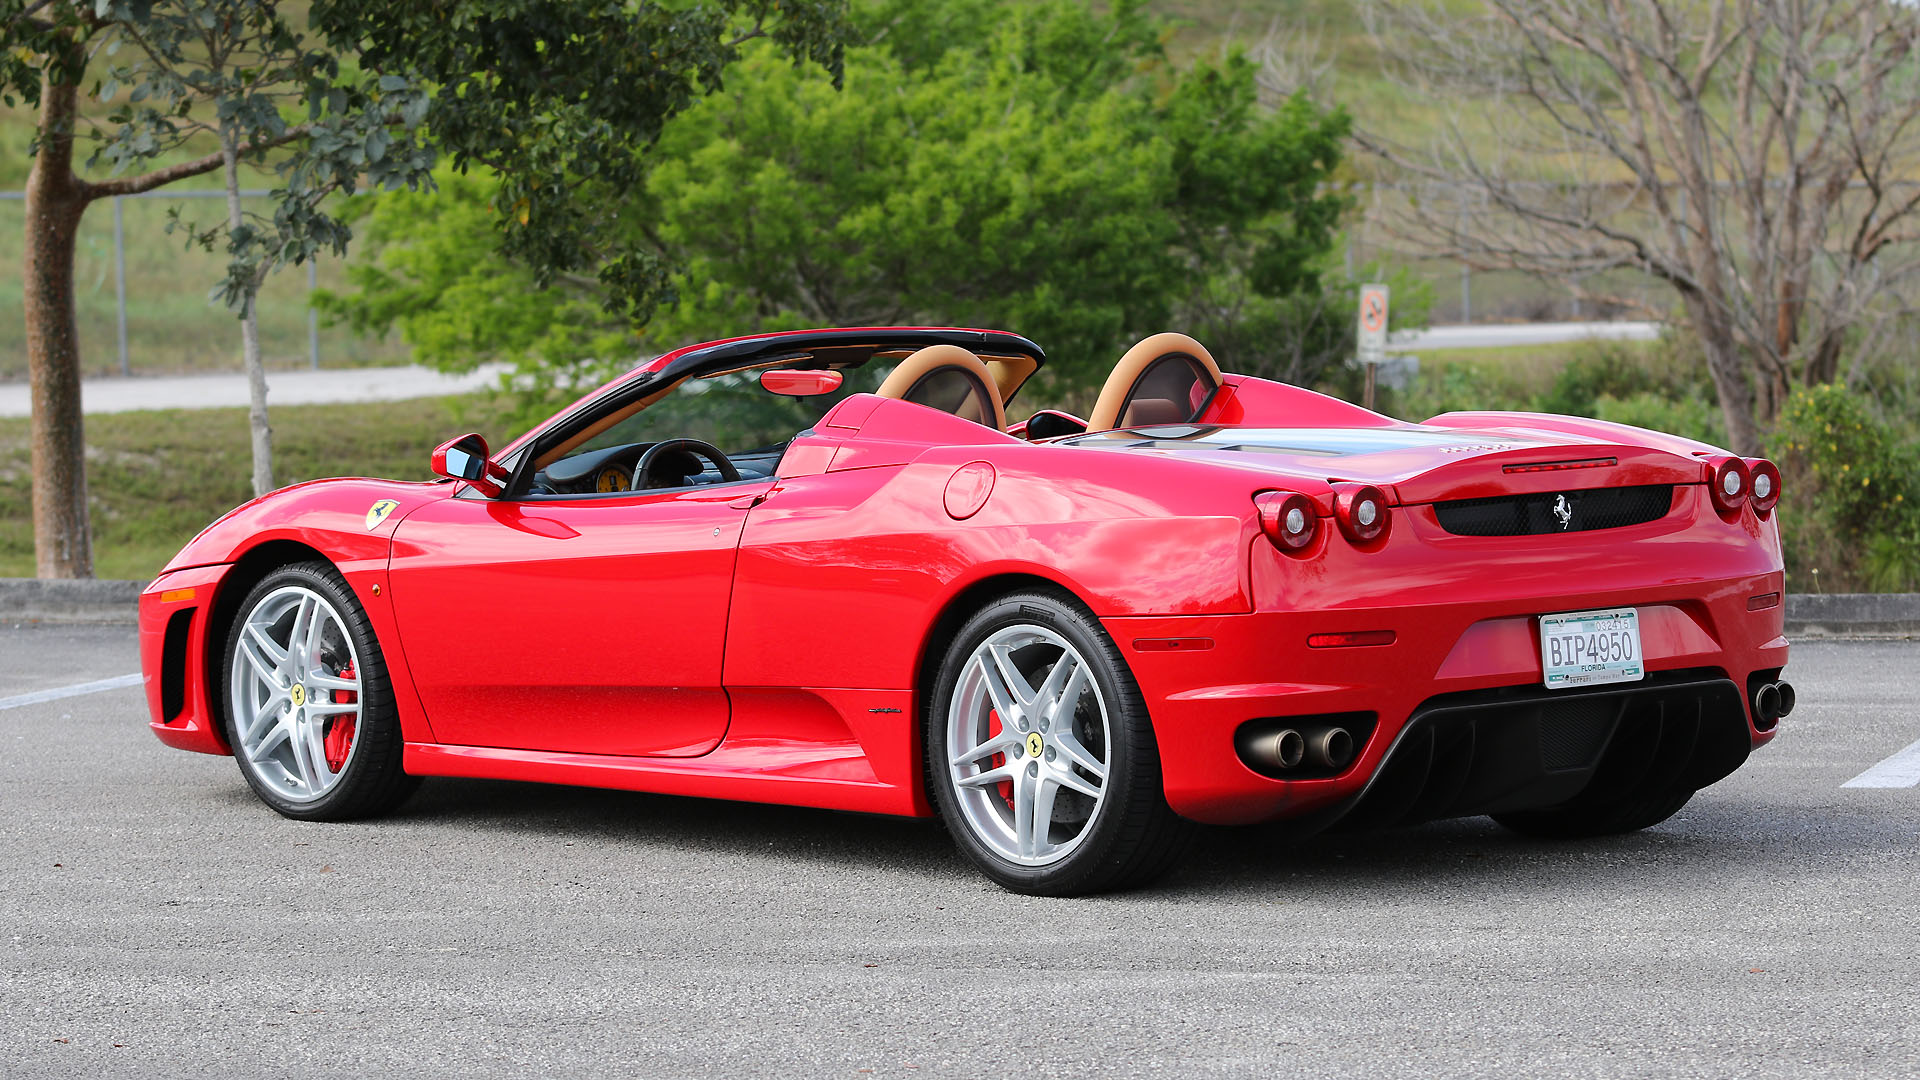 ferrari f430 spider gallery drag racing. Black Bedroom Furniture Sets. Home Design Ideas